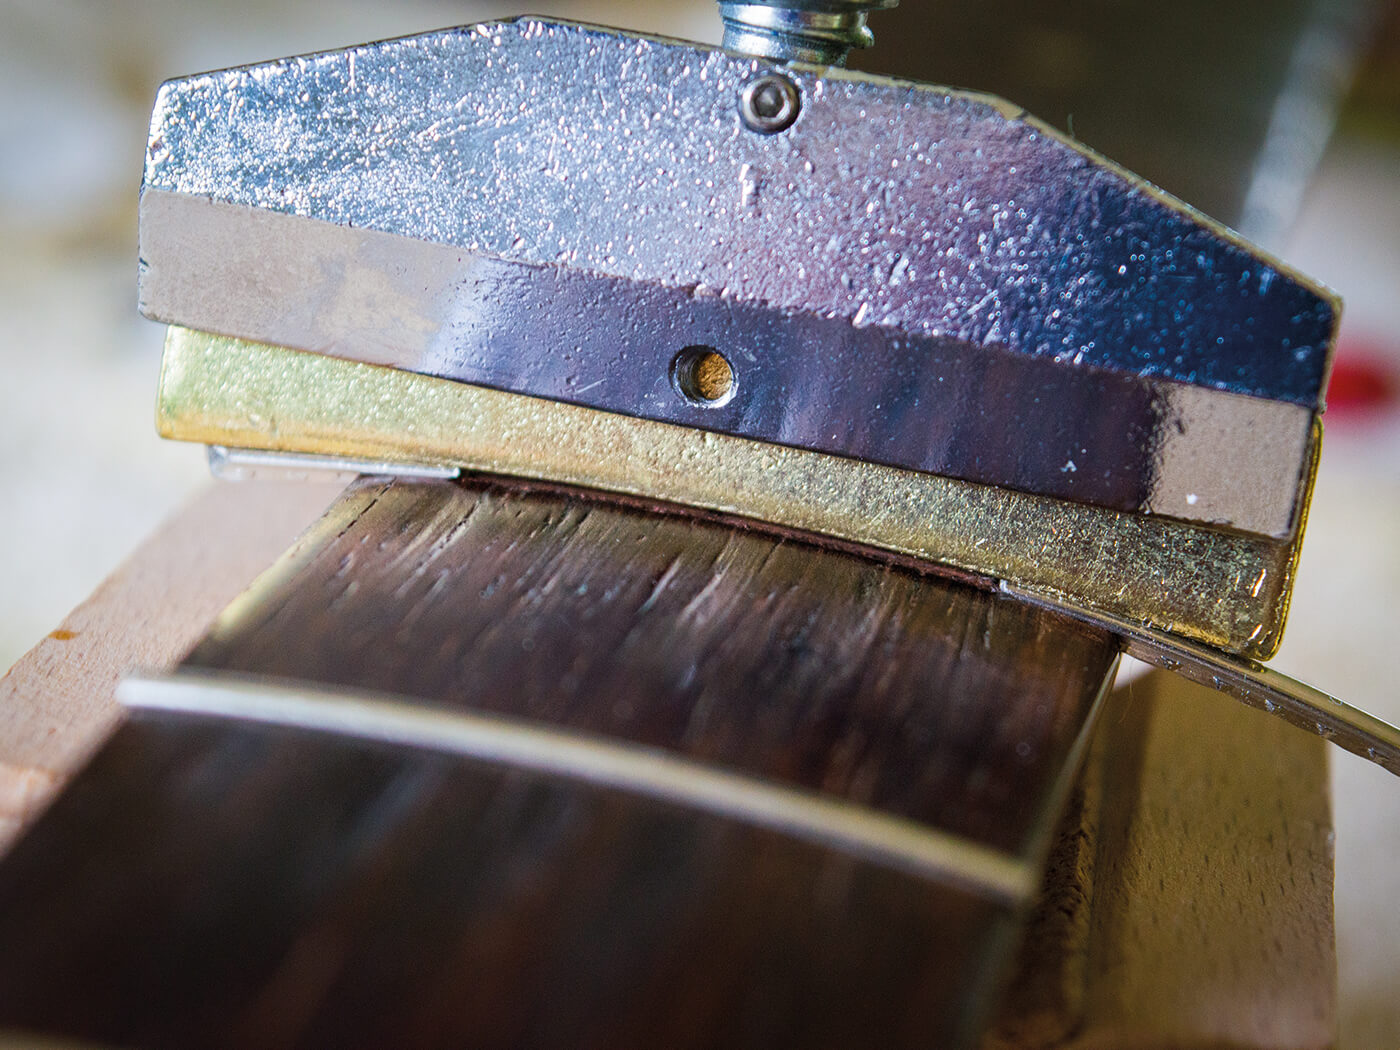 Caul guiding frets on strat fingerboard